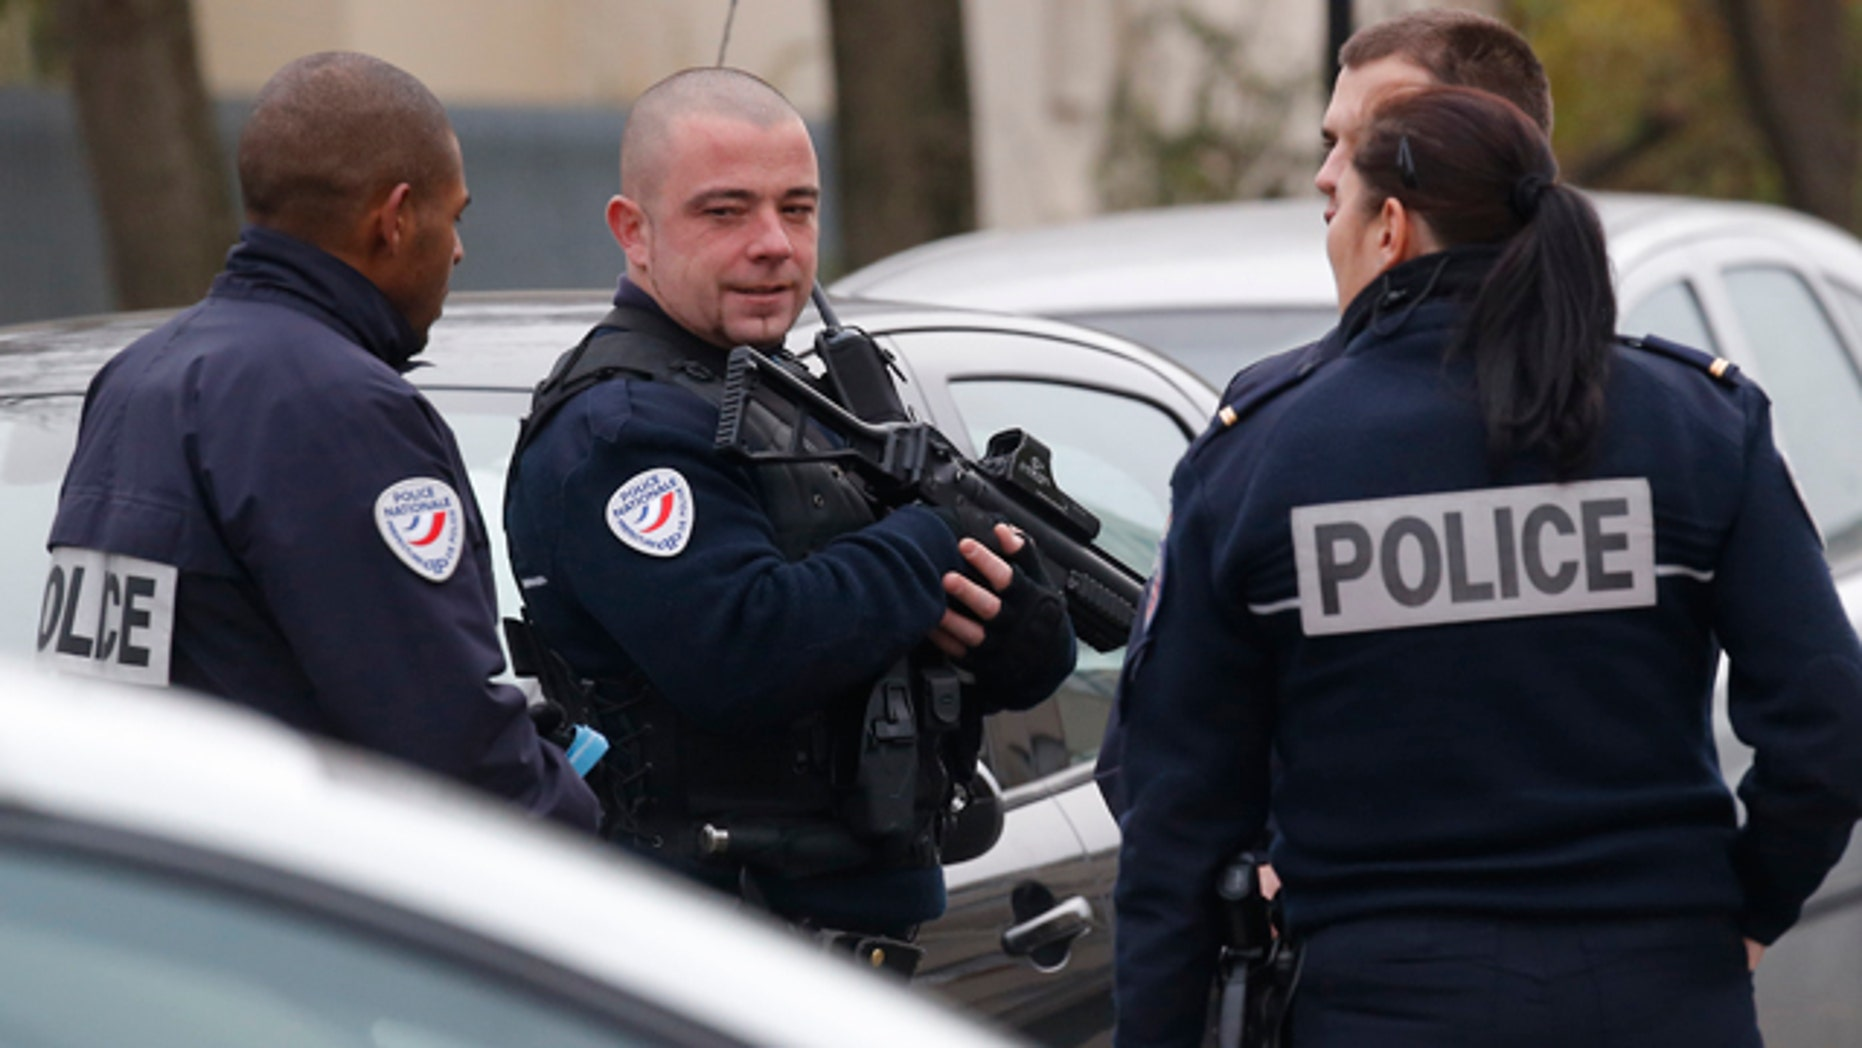 Dec. 14, 2015: Police officers patrol near a preschool, after a masked assailant with a box-cutter and scissors who mentioned the Islamic State group attacked a teacher in the Paris suburb of Aubervilliers.